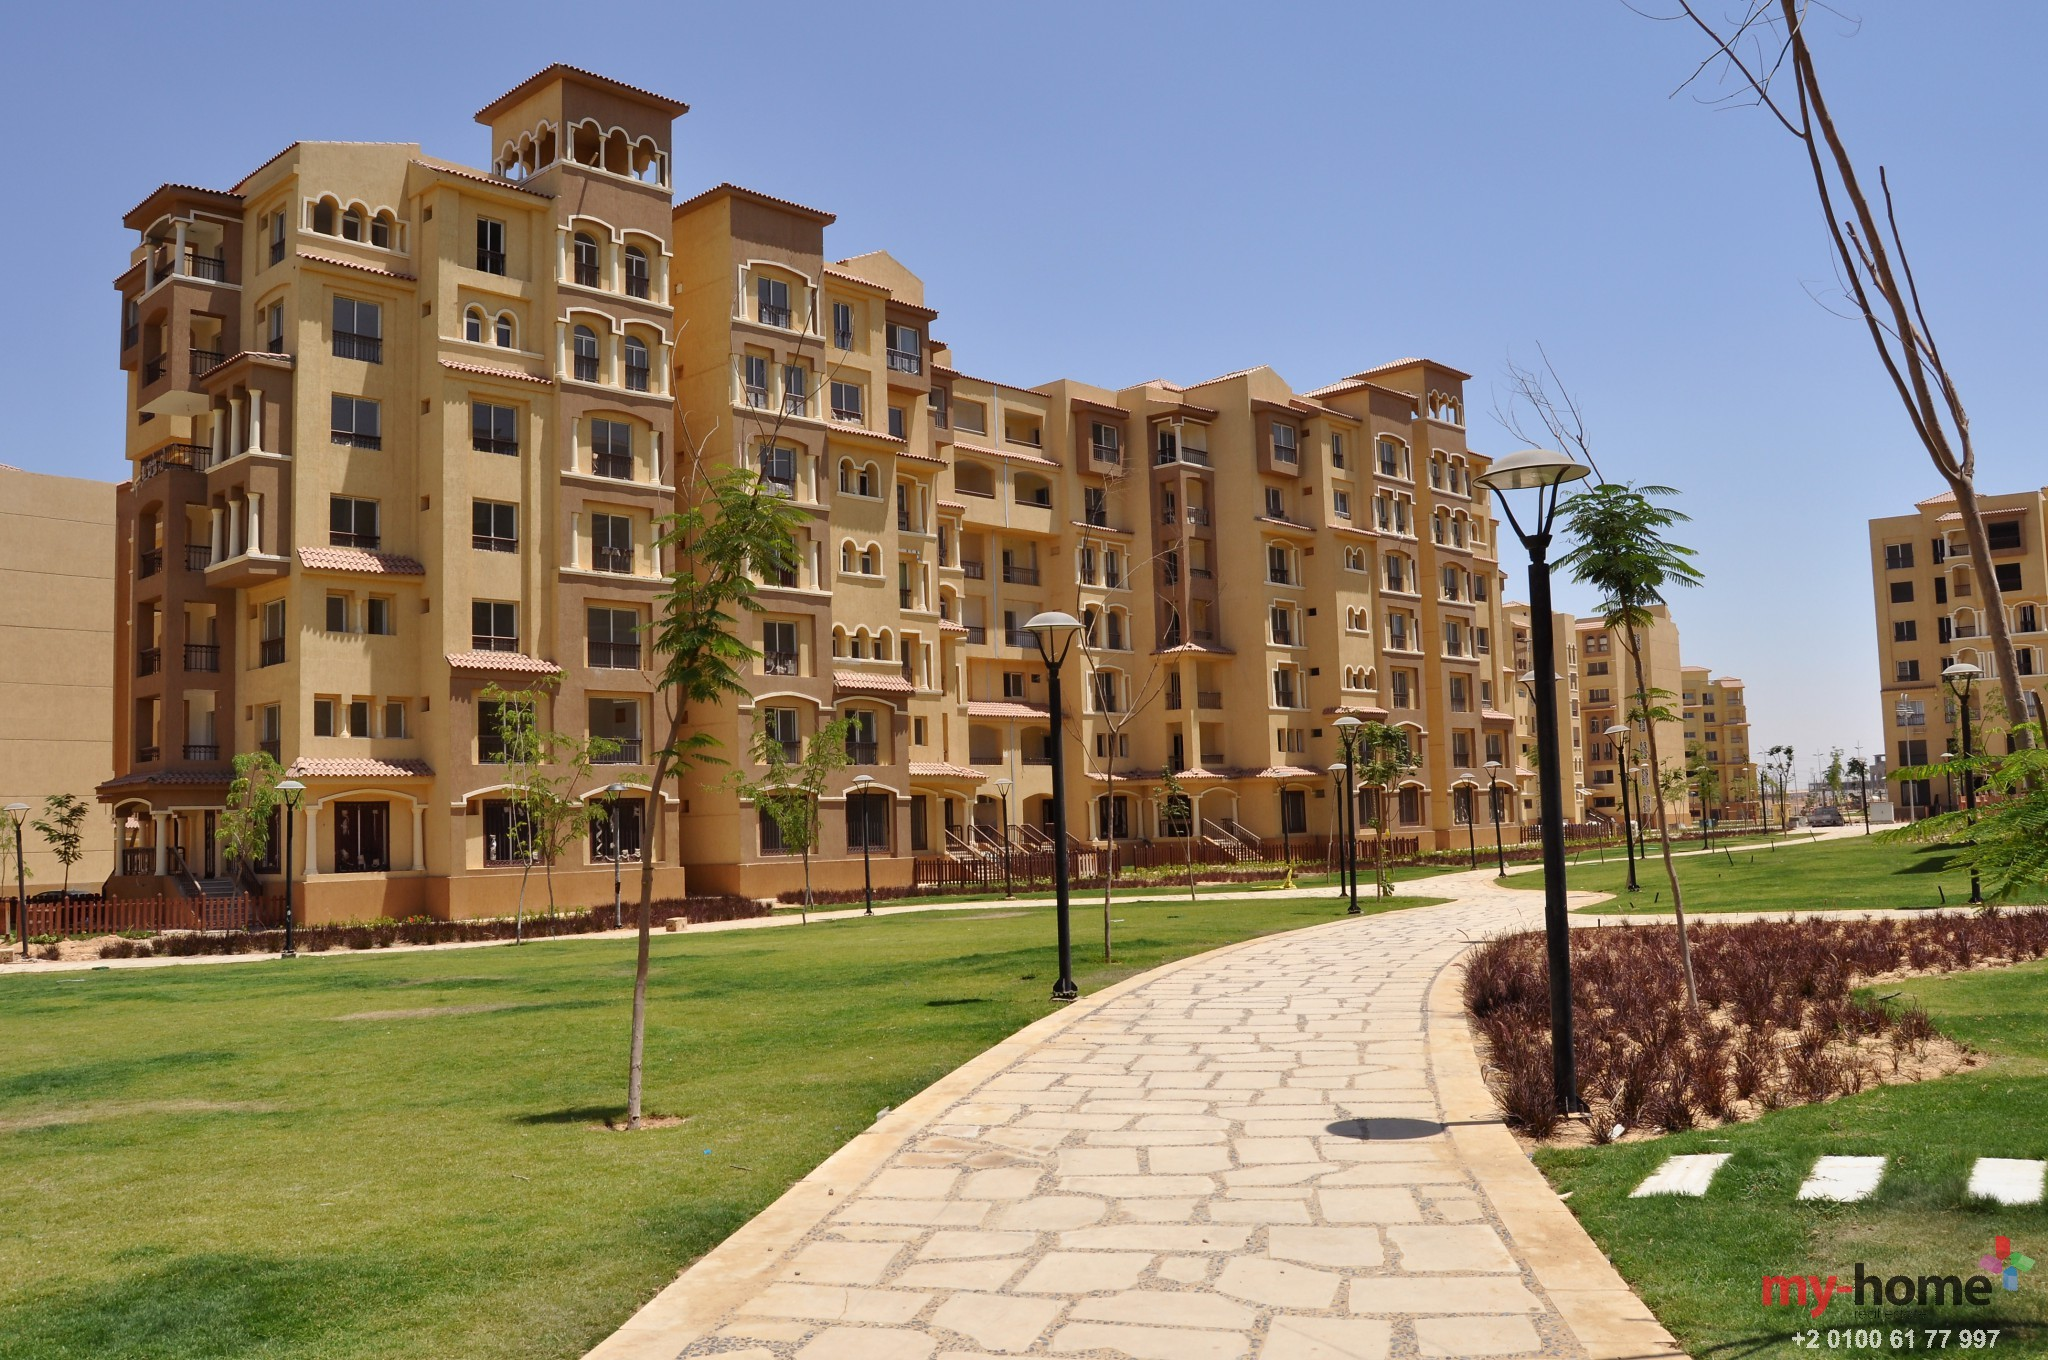 Explore the privileges of living in Madinaty